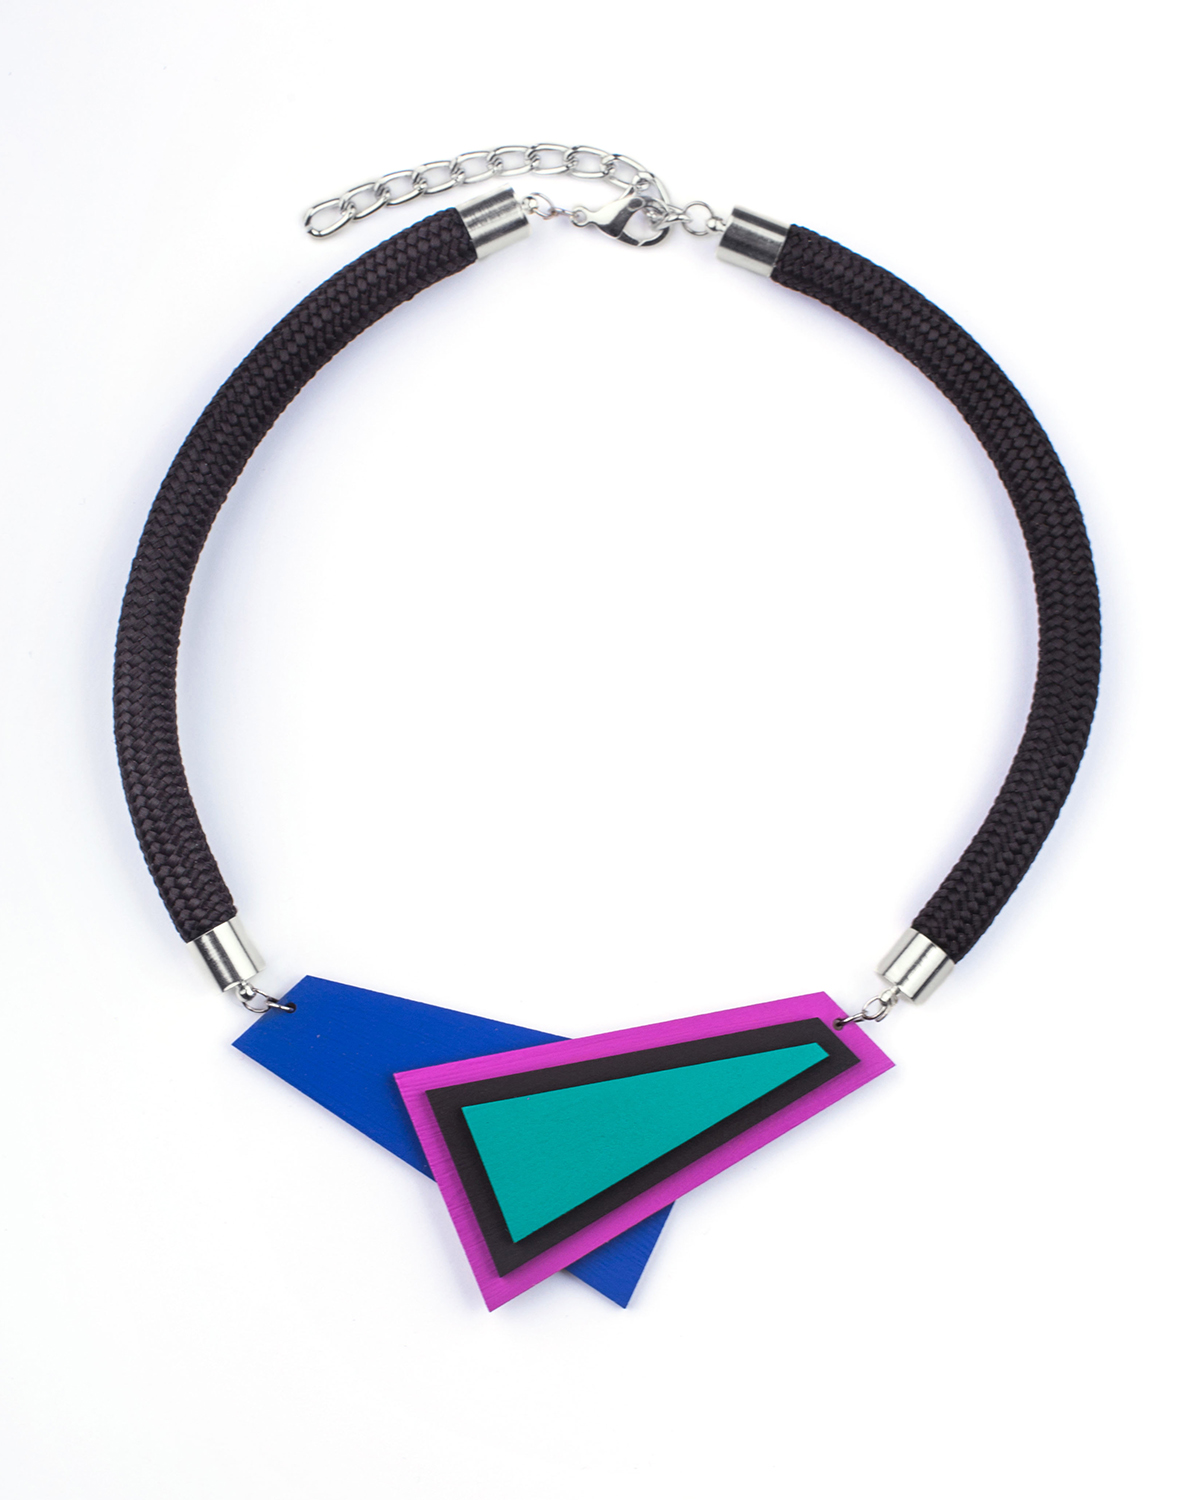 Popout necklace AsymmetricBlue | Lasercut jewelry | Rename jewelry | Made in Belgrade